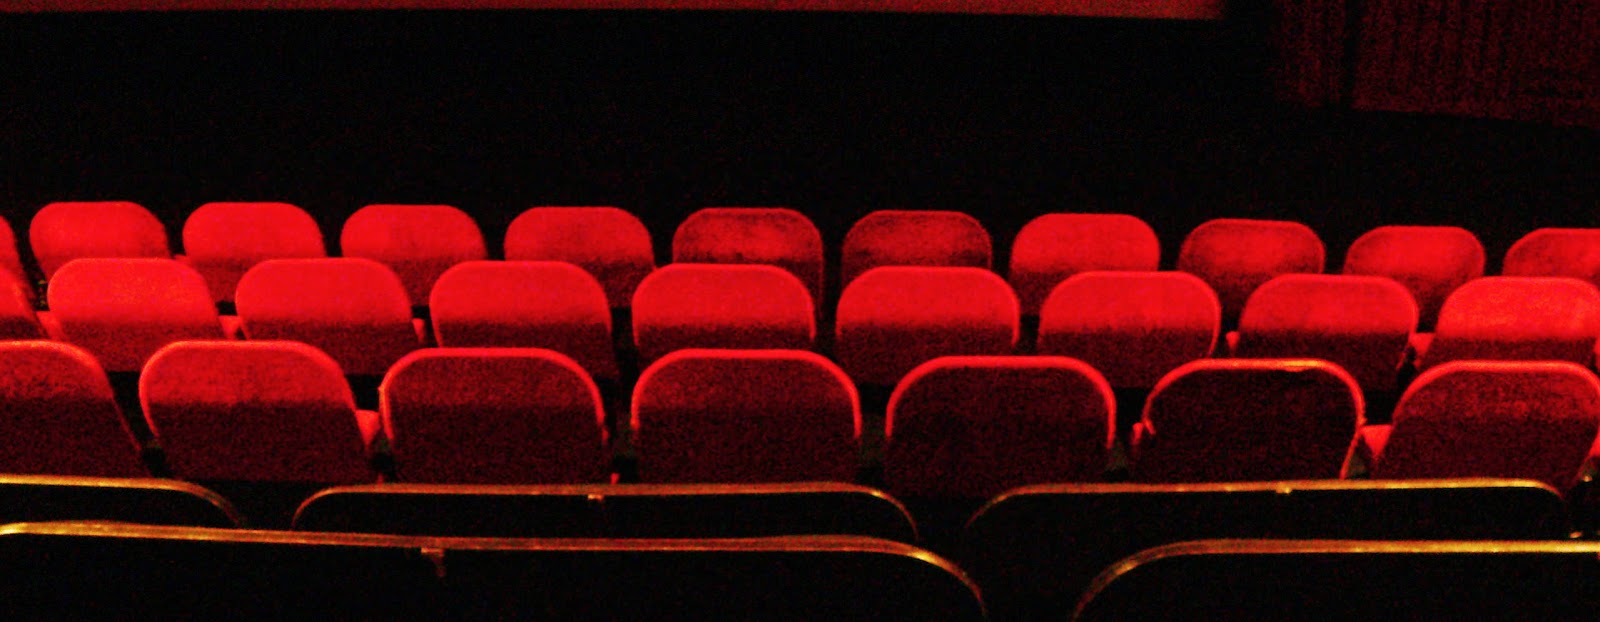 theater red seats